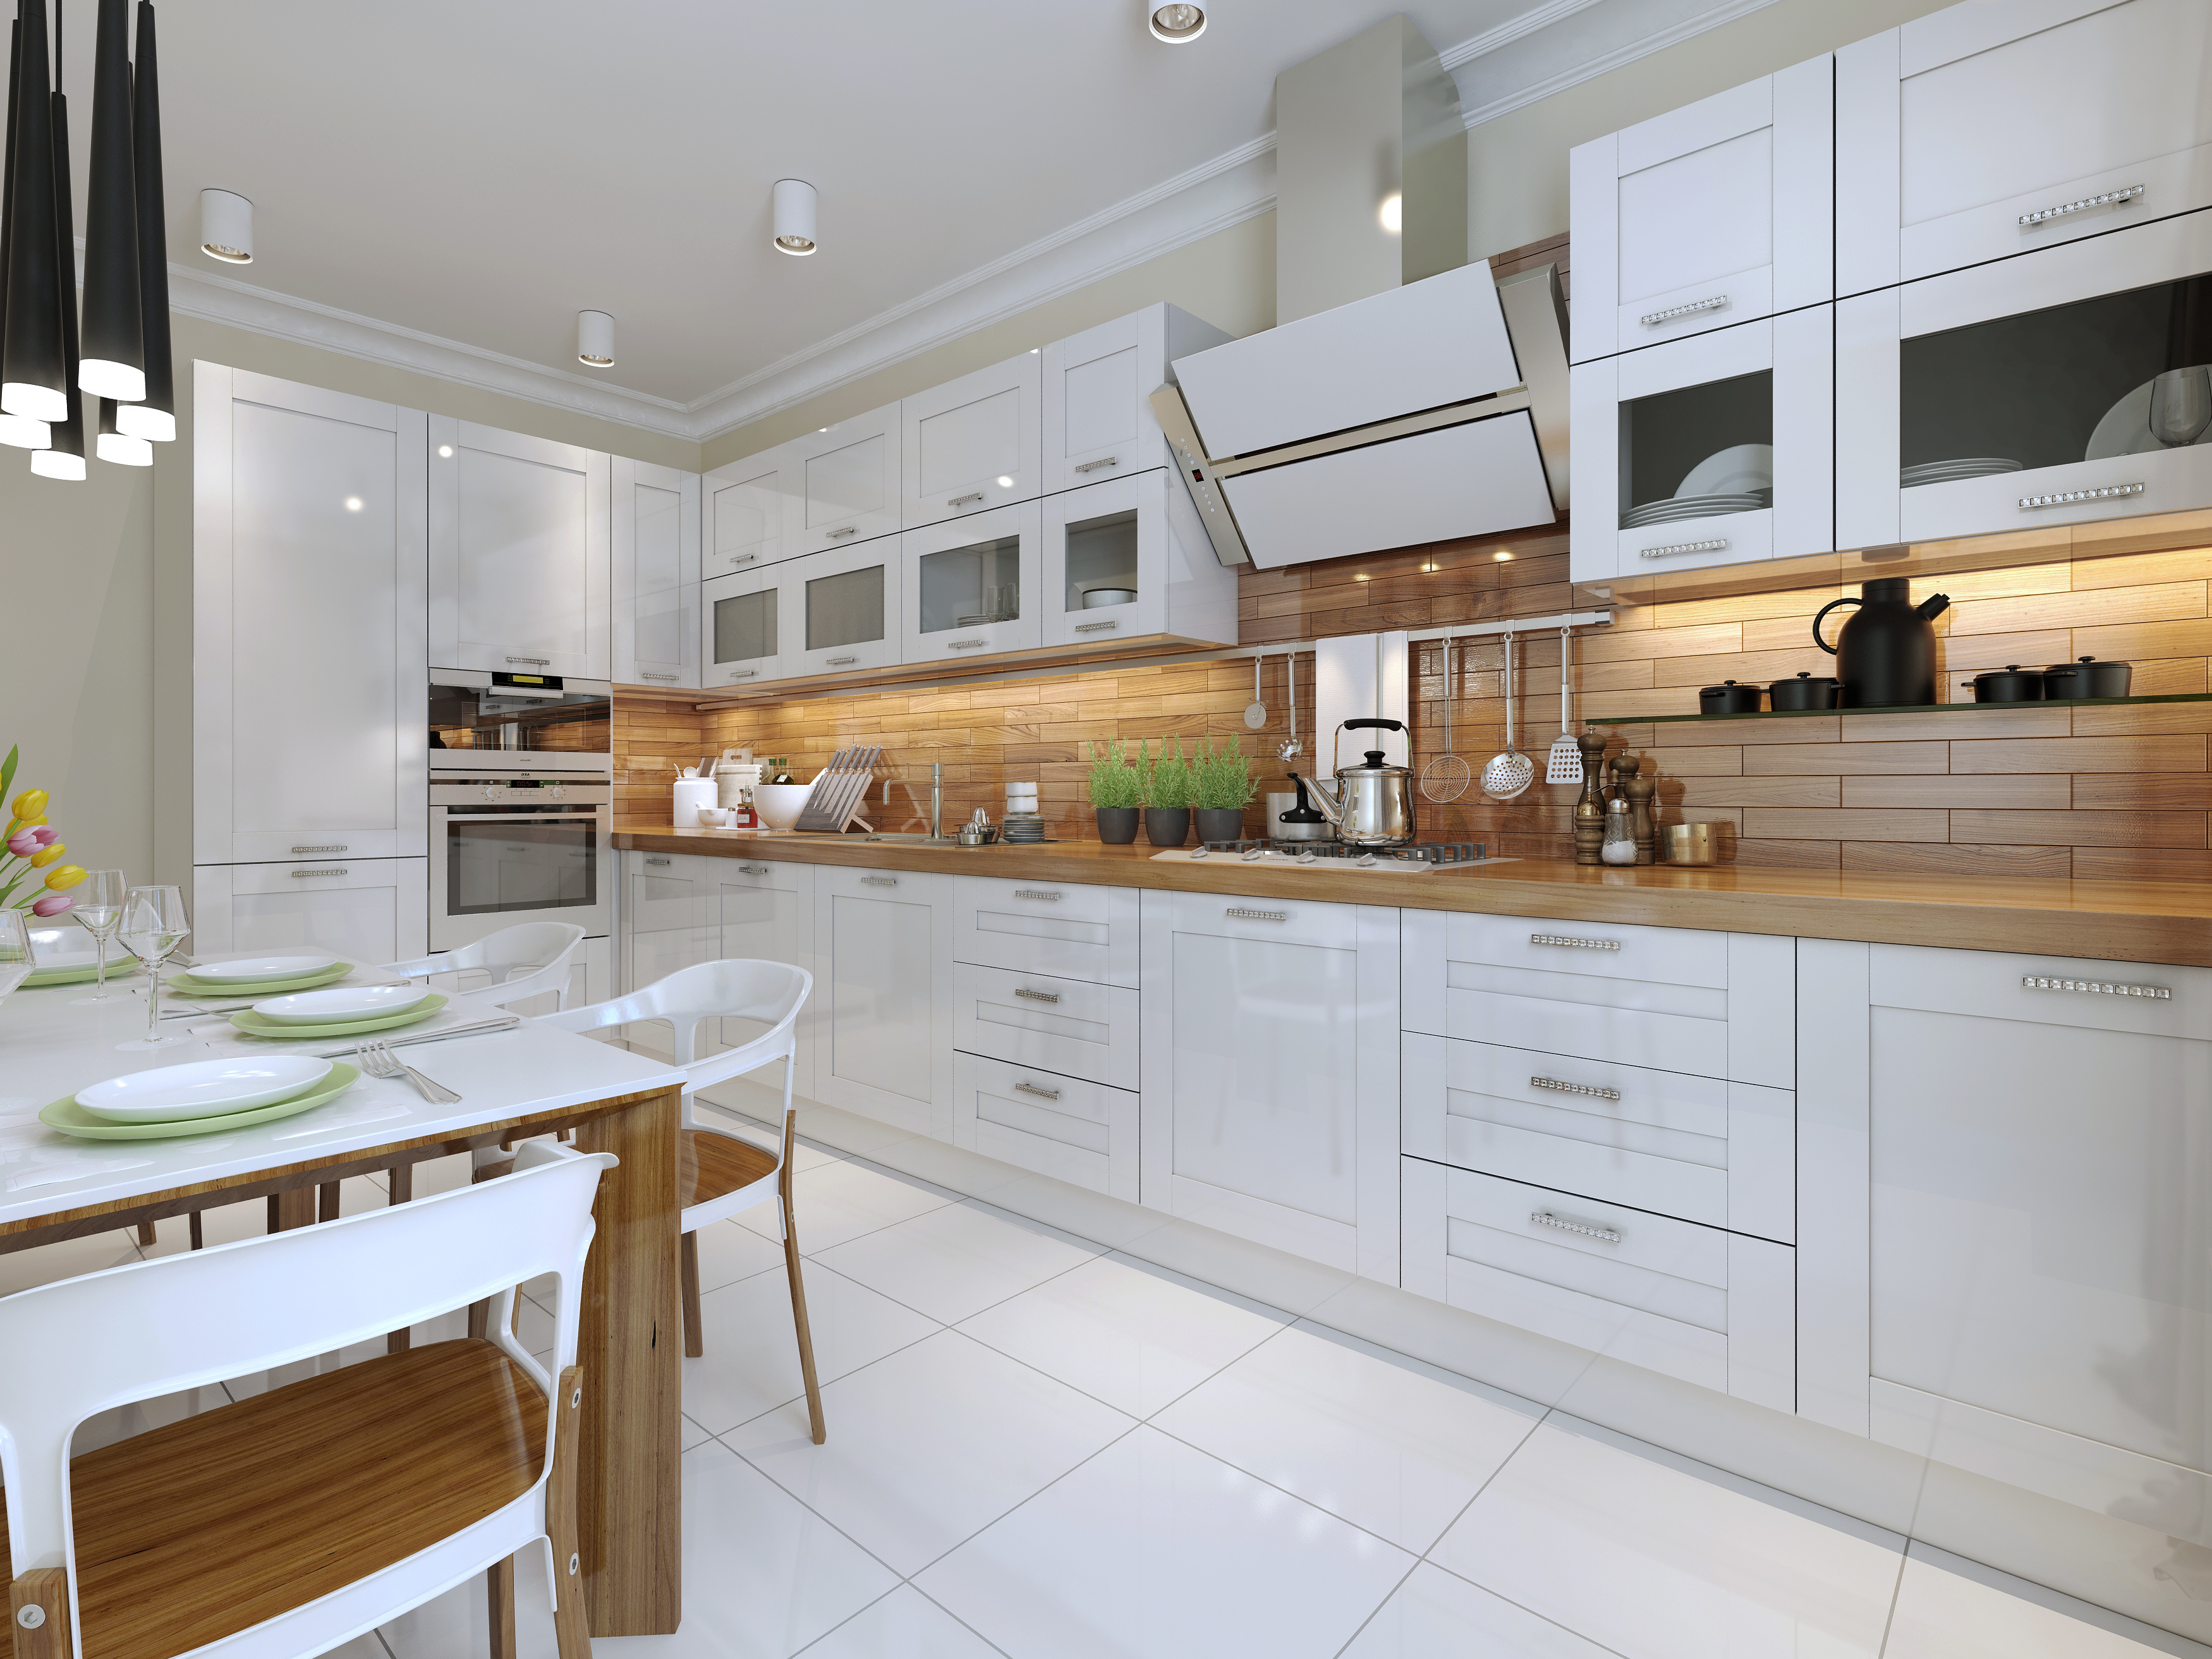 Amazing Classic Kitchen Design Ideas 600 x 588 · 75 kB · jpeg